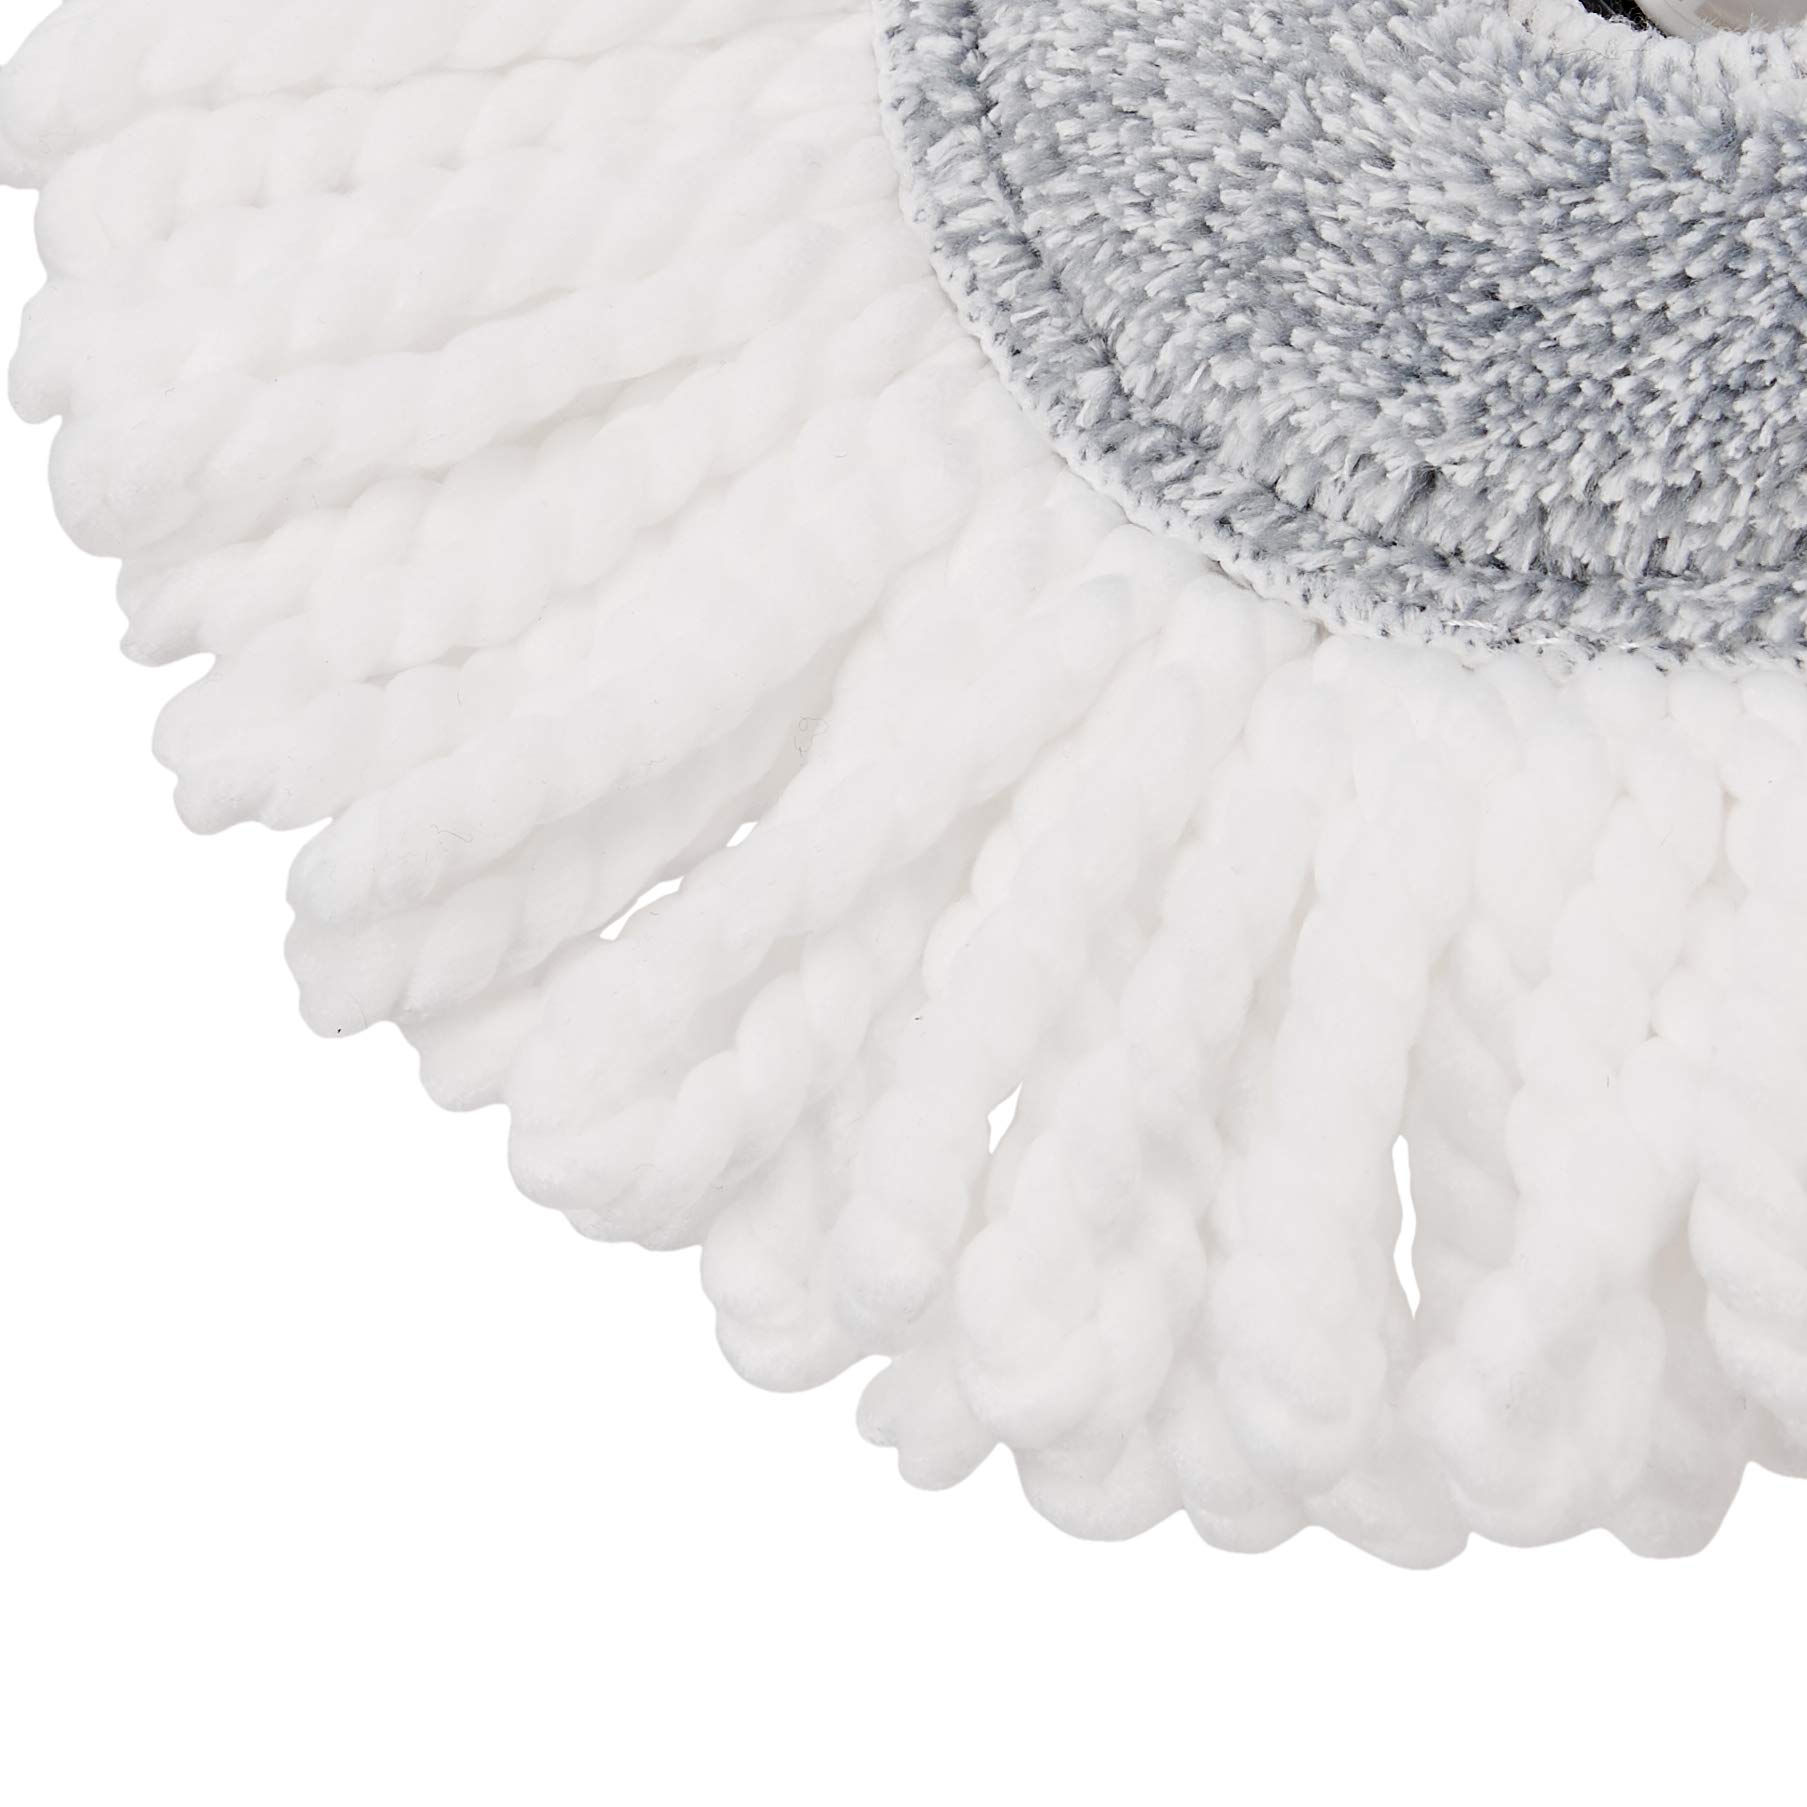 AmazonBasics Spin Mop with Built-In Ringer and Large Water Bucket by AmazonBasics (Image #5)